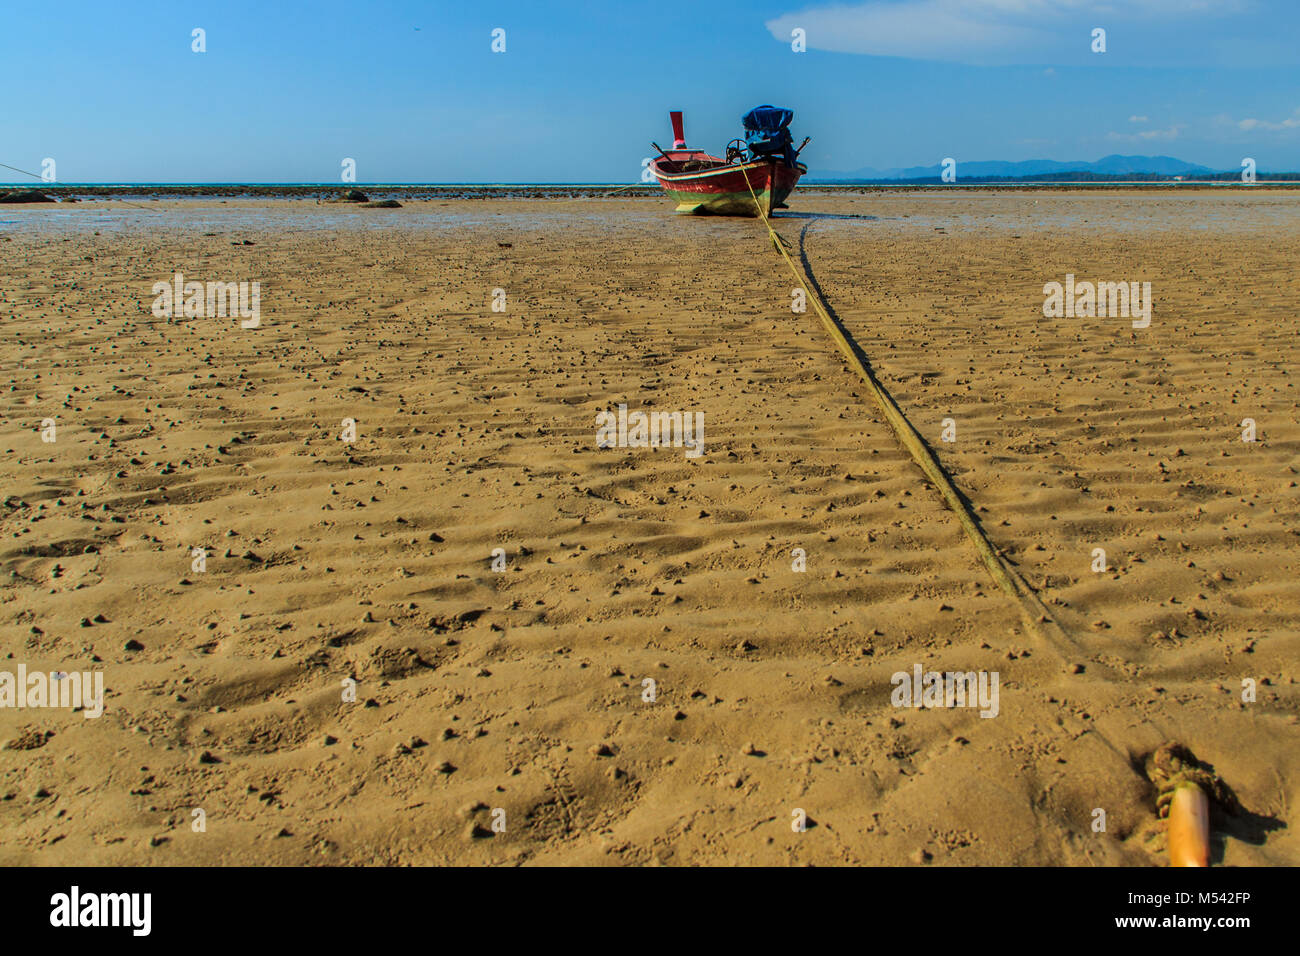 Traditional Thai wooden longtail boats (Rua Hang Yao) moored on the sand at small pier with blue sky and small island Stock Photo